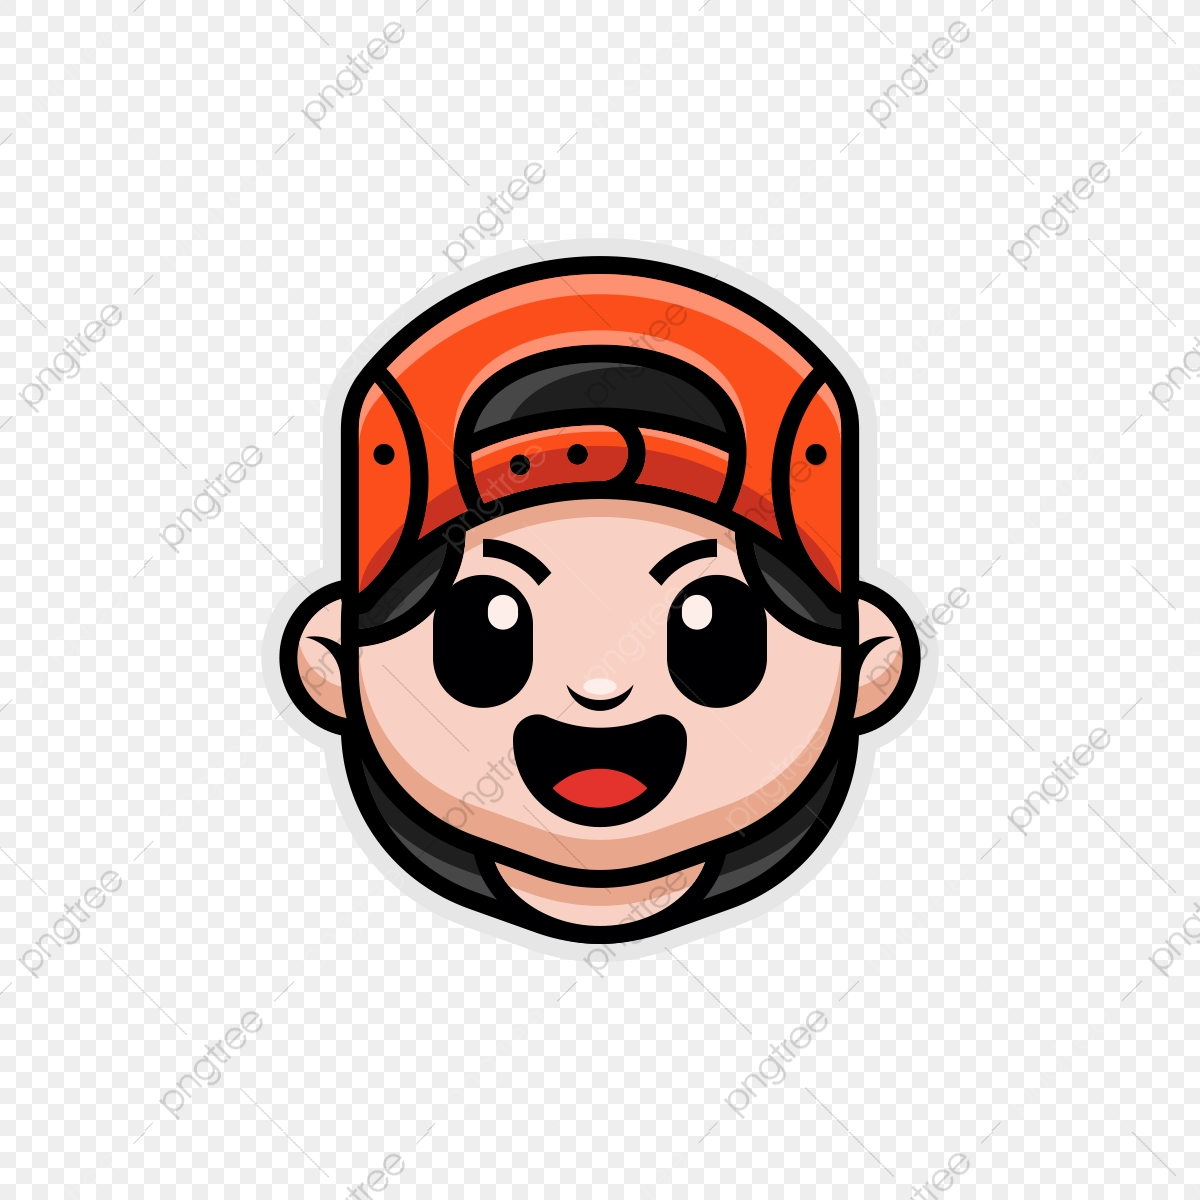 Cute Boy Cartoon Mascot Logo Cute Boy Cool Boy Mascot Png And Vector With Transparent Background For Free Download